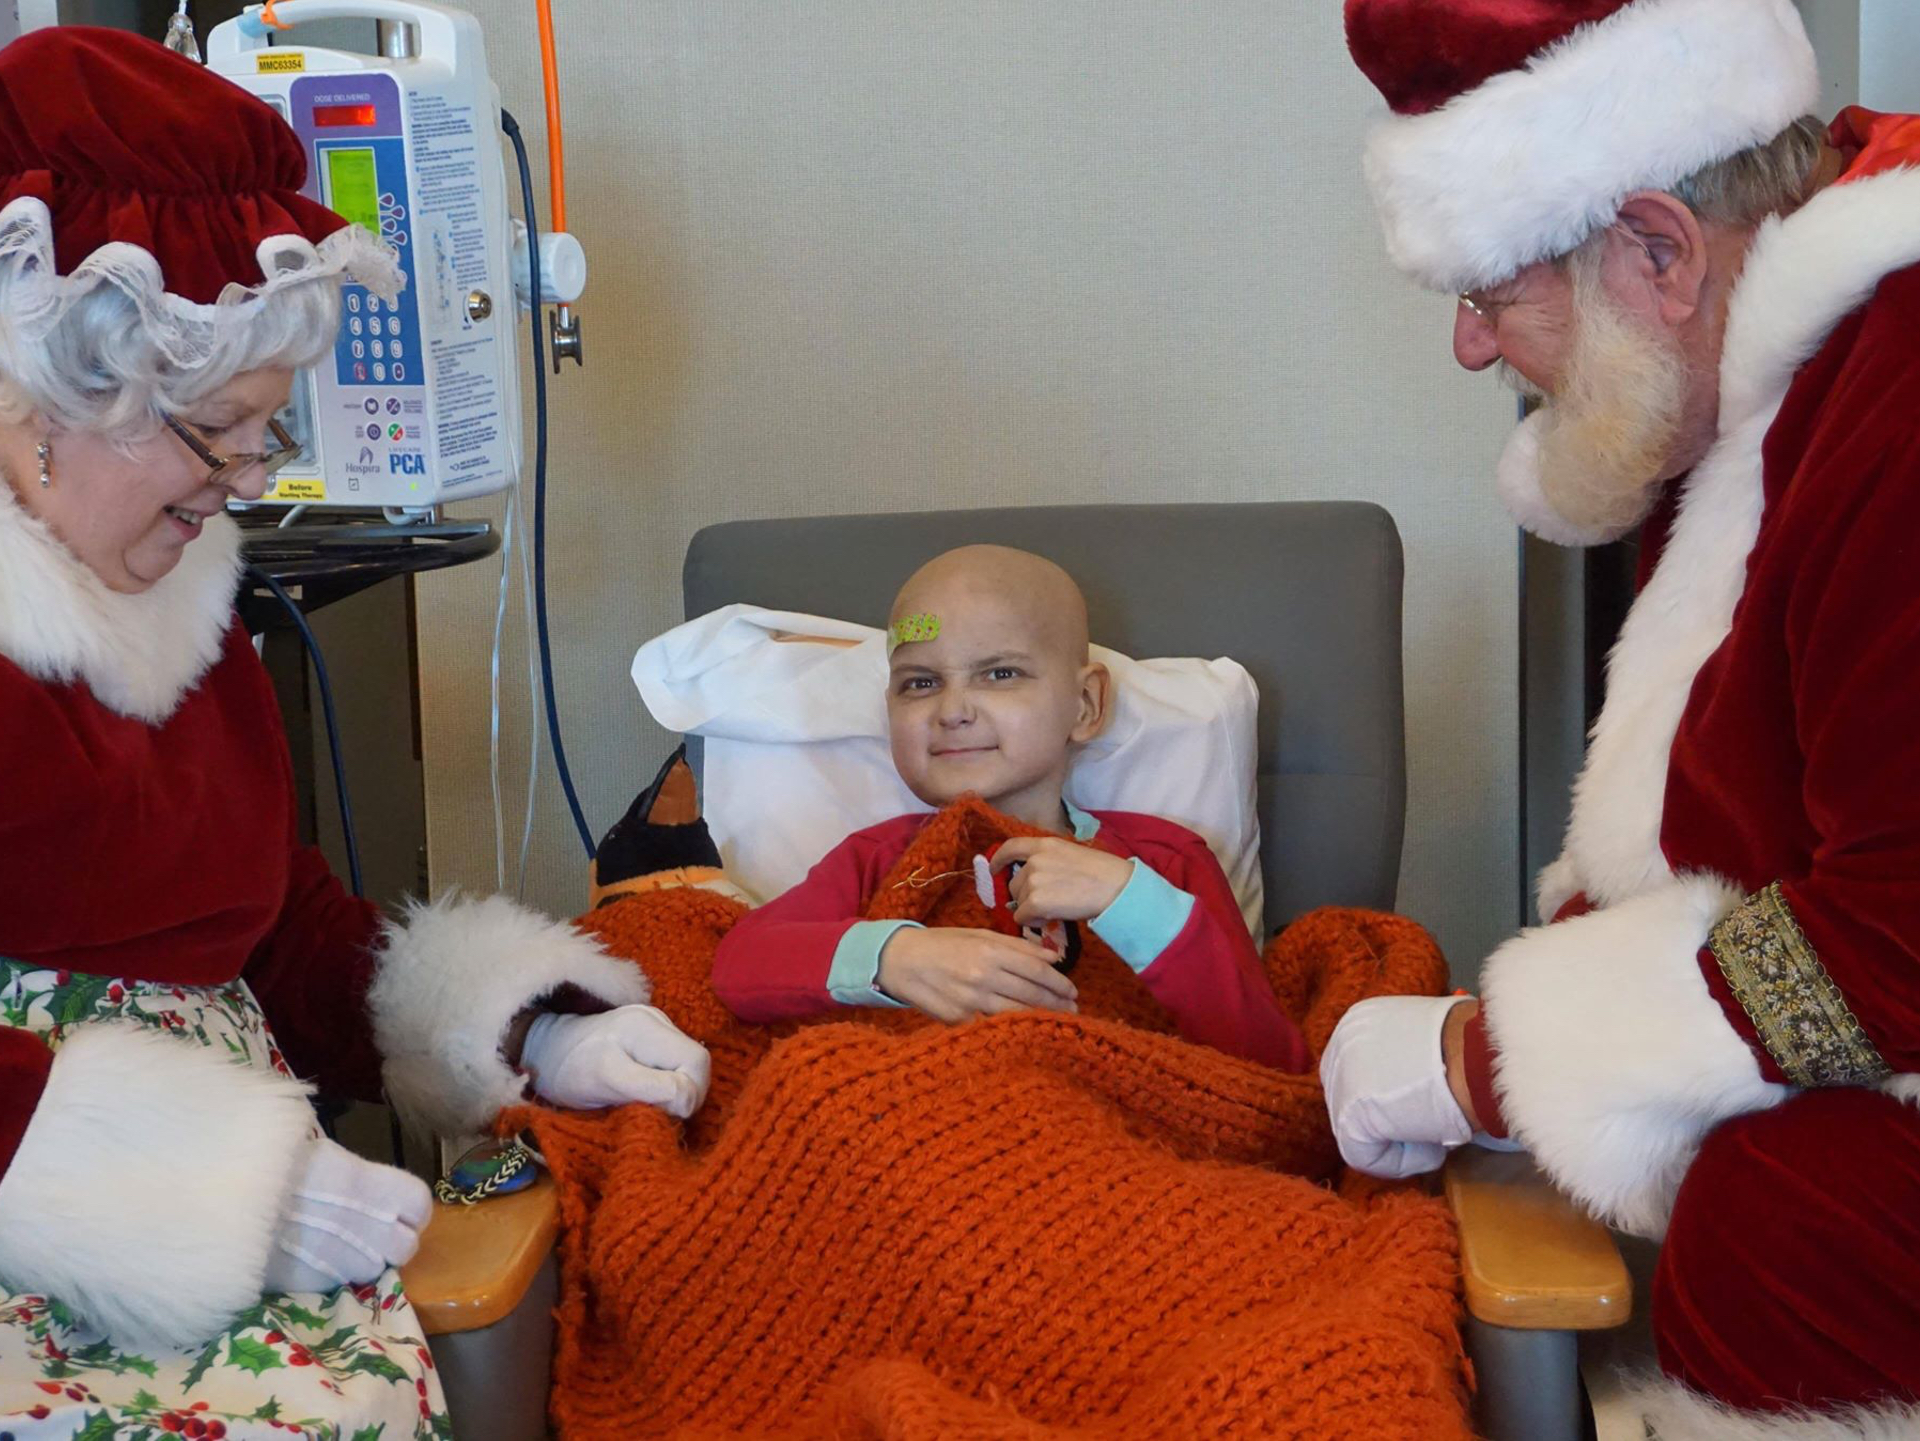 9-year-old boy with cancer, who asked for Christmas cards, dies